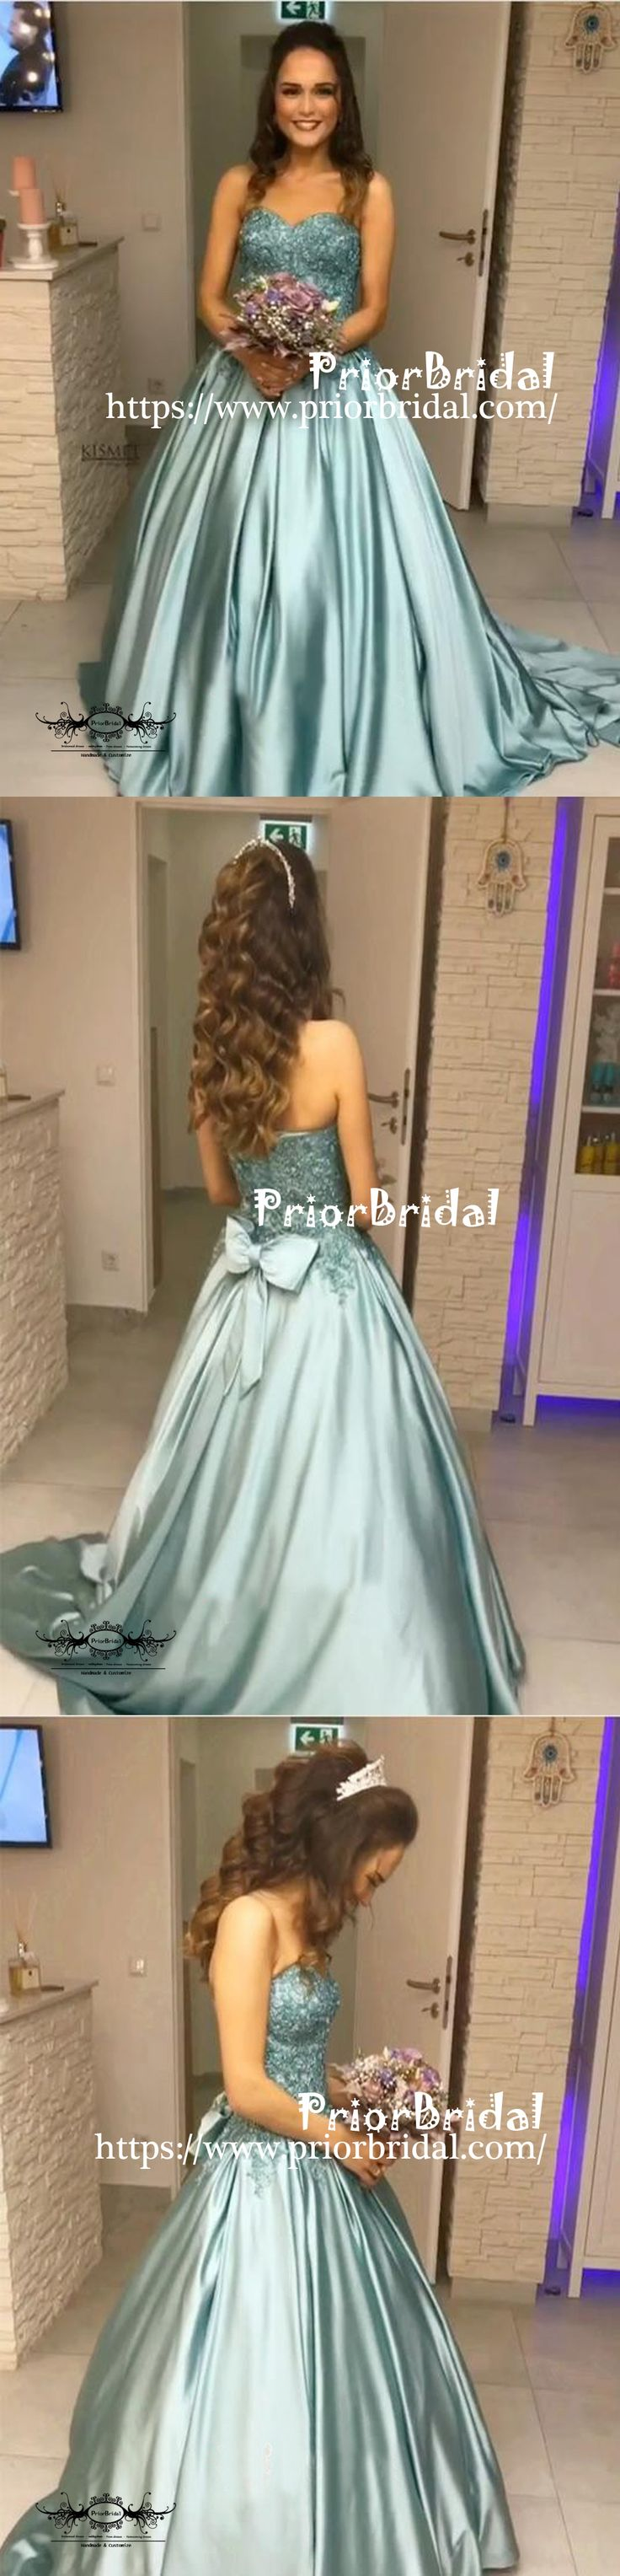 Tiffany Blue Lace Beaded Top Sweetheart Strapless Ball Gown Prom Dresses,PB1041